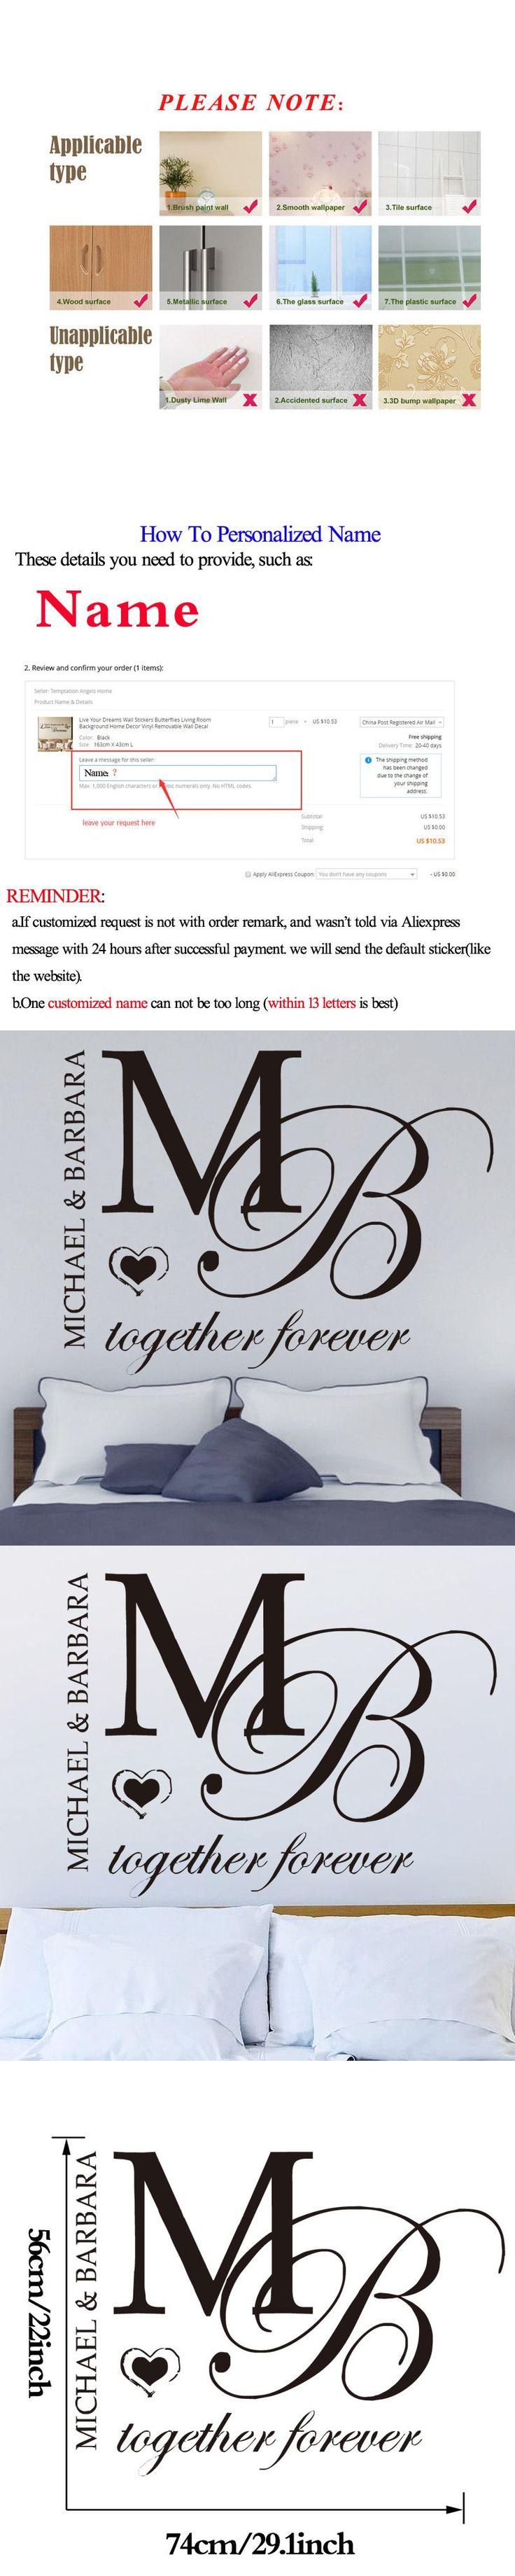 Best 25 name wall decals ideas on pinterest name wall art dctop together forever bedroom decoration diy wall stickers home decor art design removable vinyl customize name amipublicfo Gallery